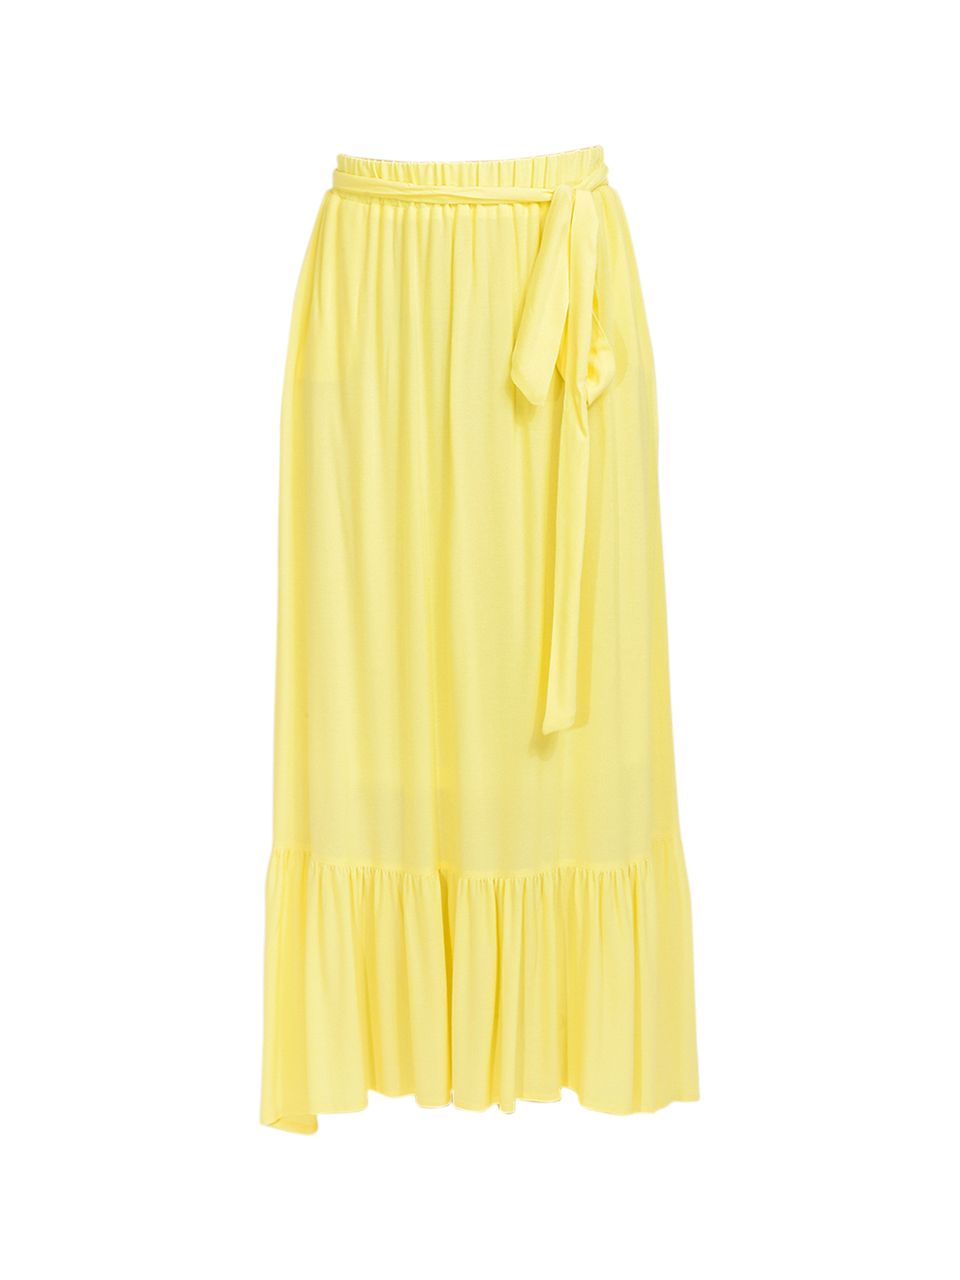 KASIA Sifnos Maxi Skirt in Yellow Product Shot